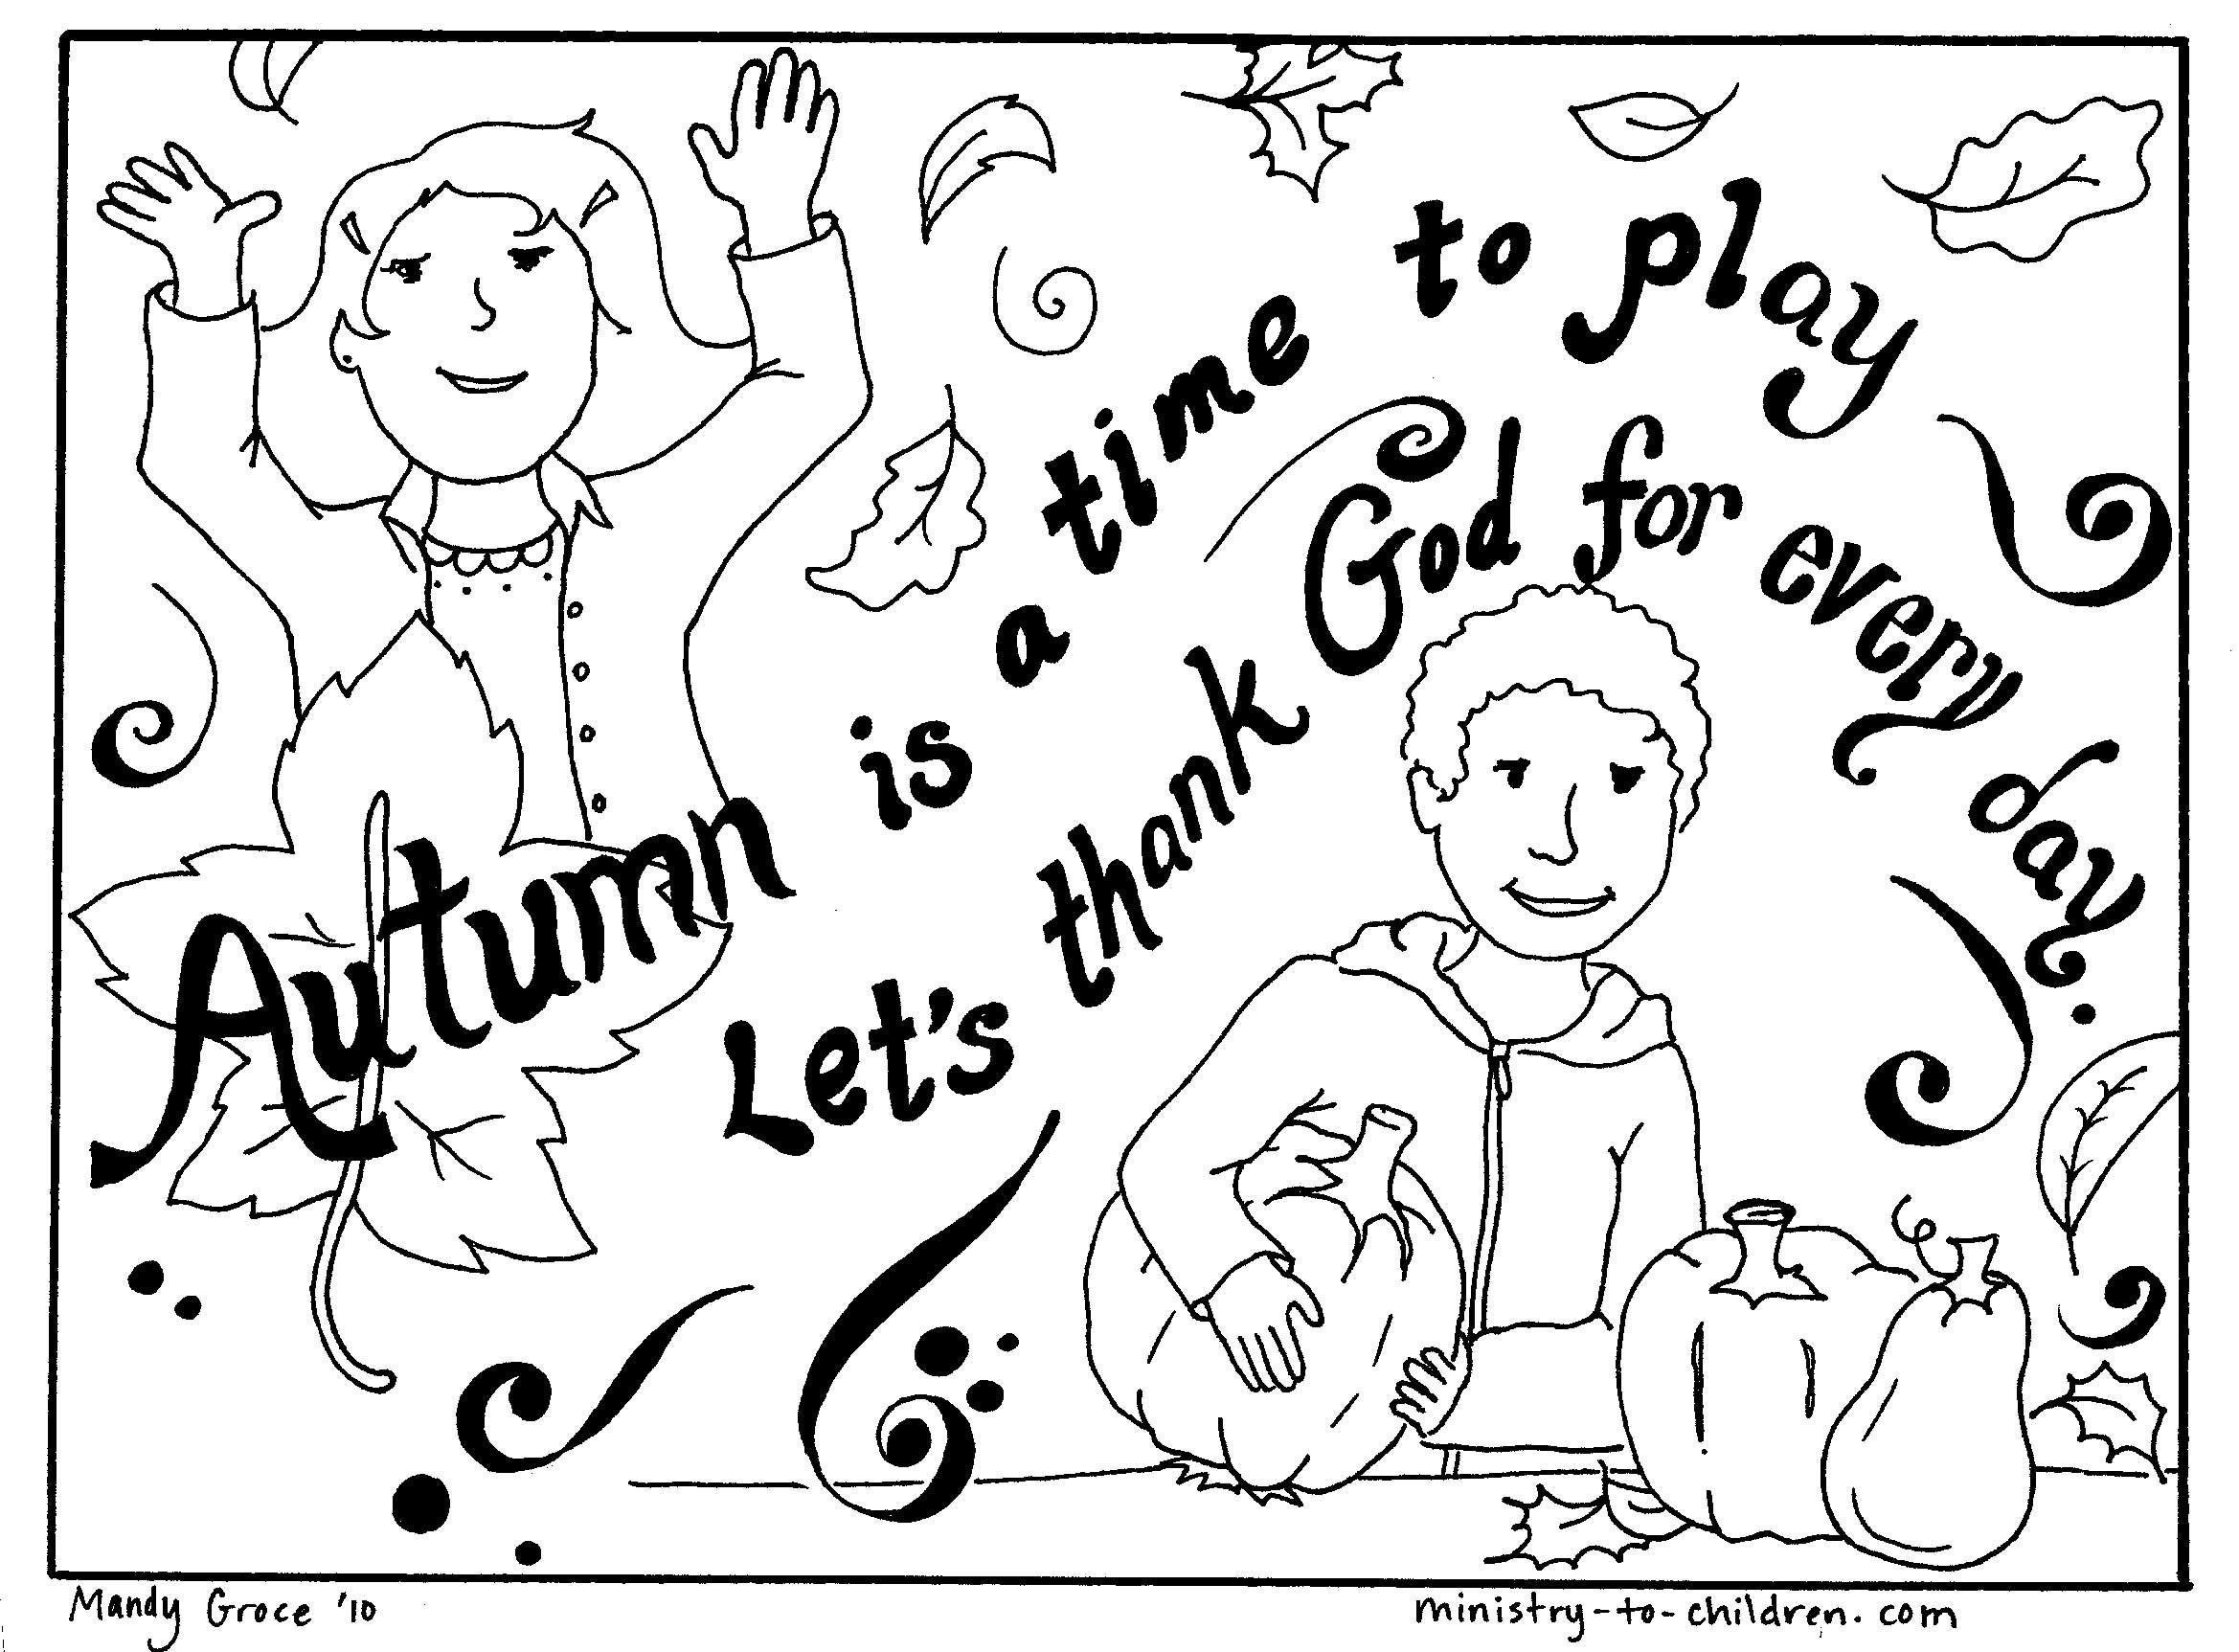 Bible Coloring Pages For Kids – With Lesson Also Activity Sheets - Bible Lessons For Toddlers Free Printable